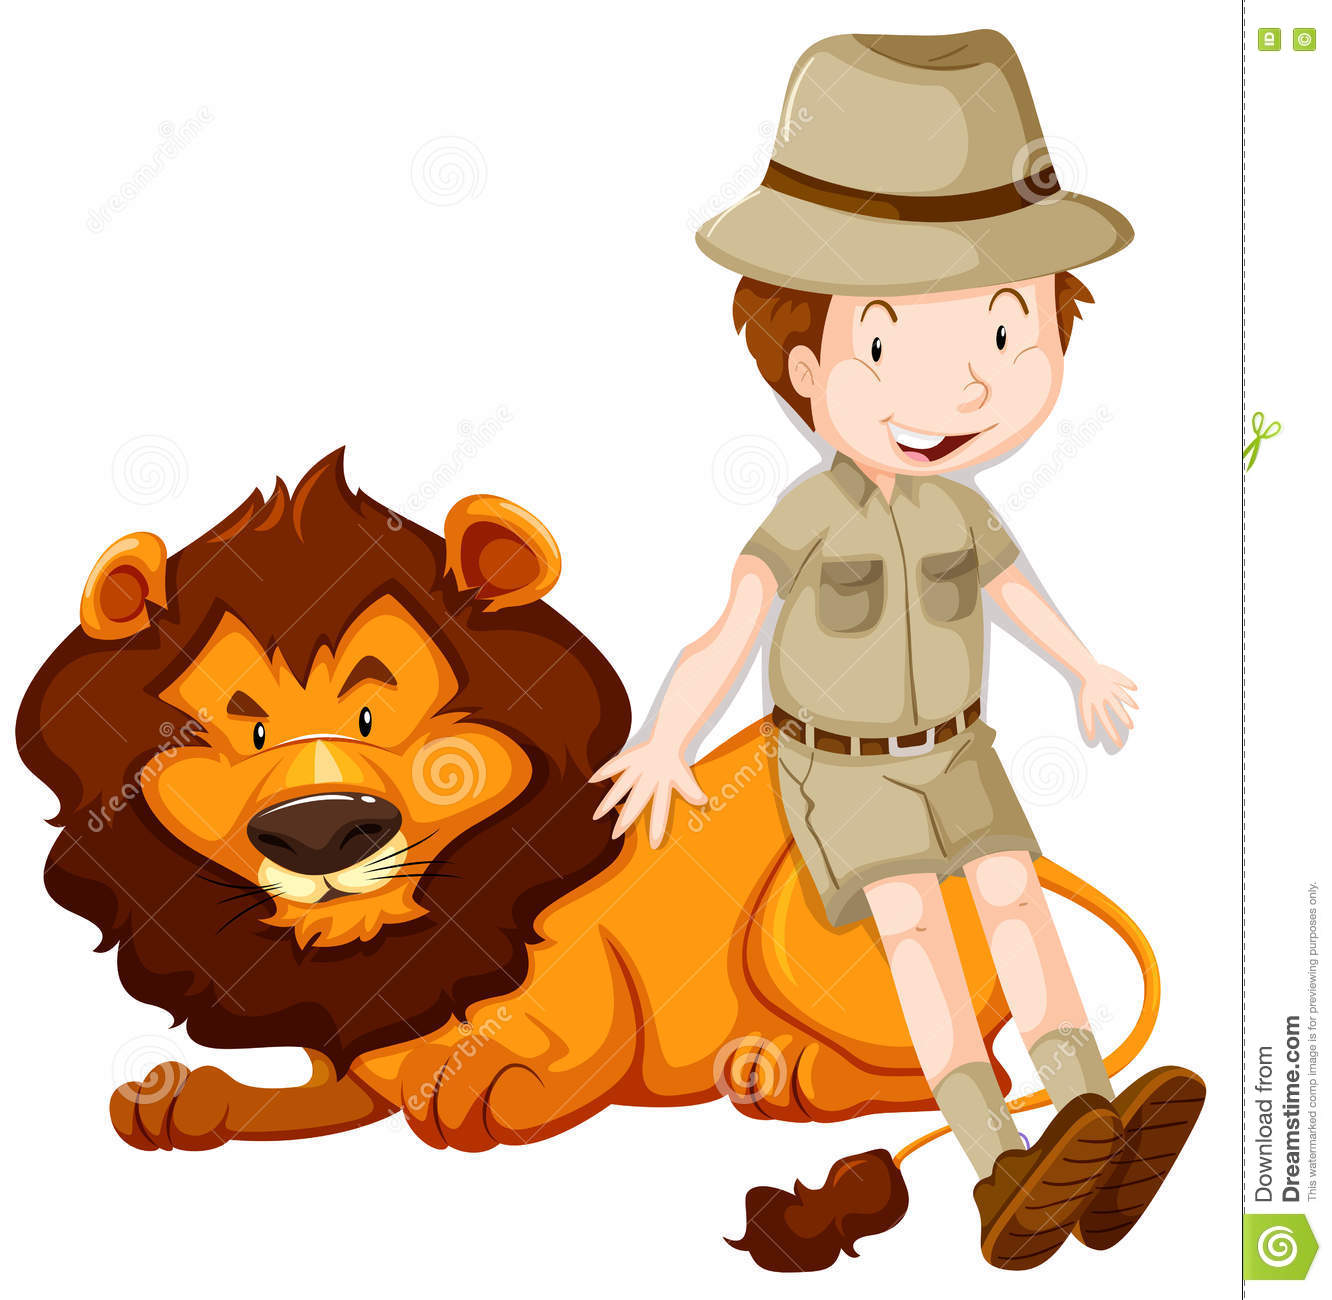 Zoologist clipart 8 » Clipart Station.